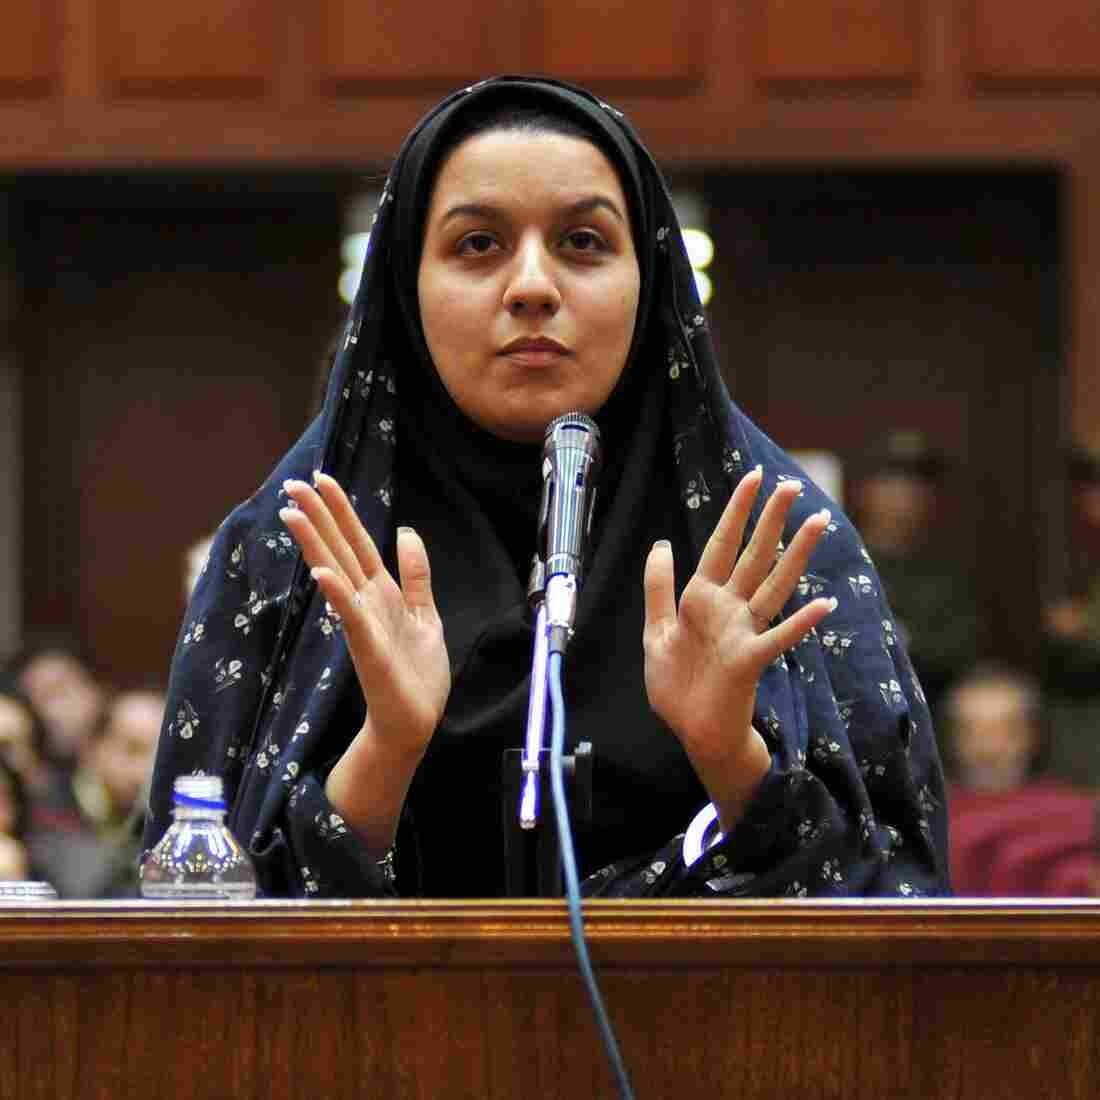 Reyhaneh Jabbari, seen here during a 2008 court date in Tehran, was executed in Iran Saturday. She had said she acted to defend herself from a potential rapist.